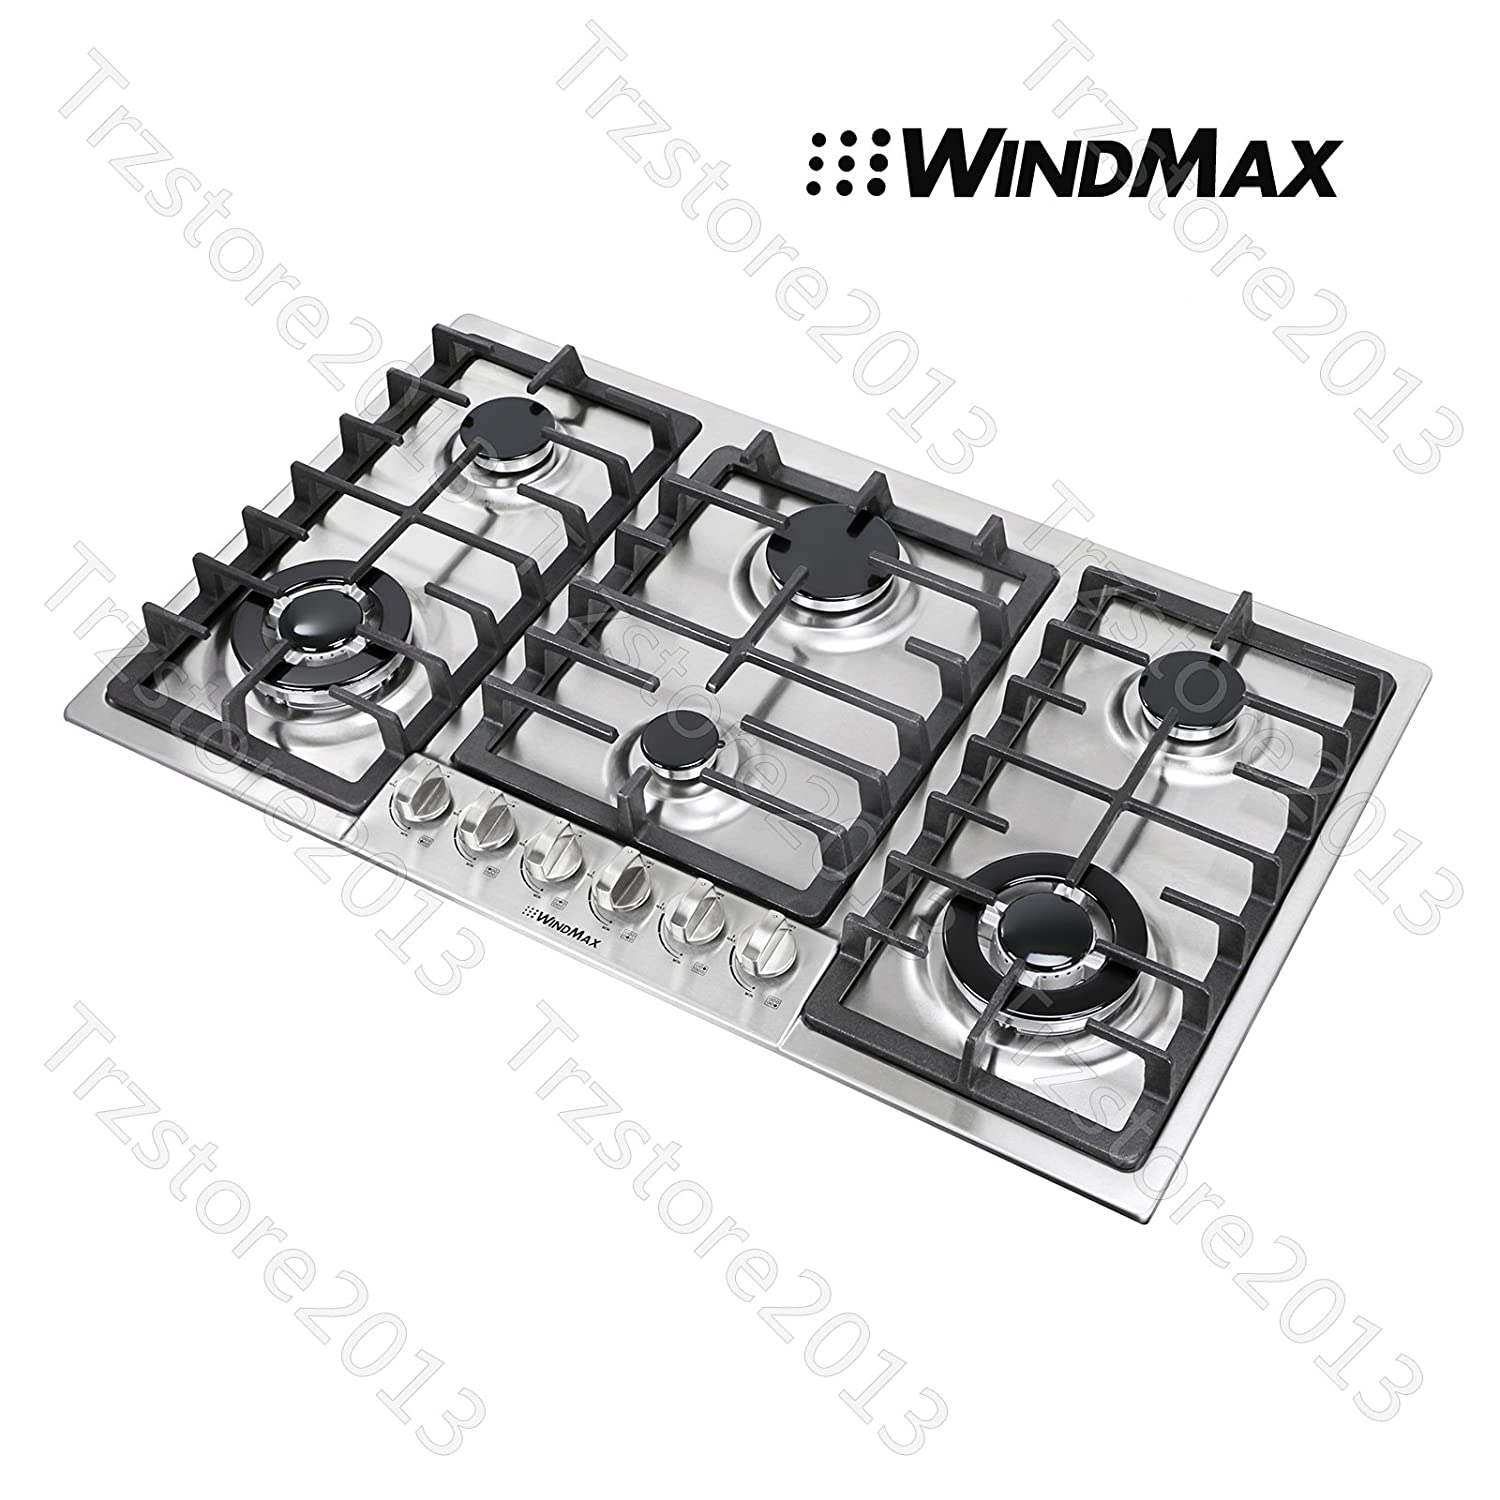 """WindMax 34"""" Titanium 6 Burners Built-In Stoves NG/LPG Cooktops Cooker~US Stored#68023"""